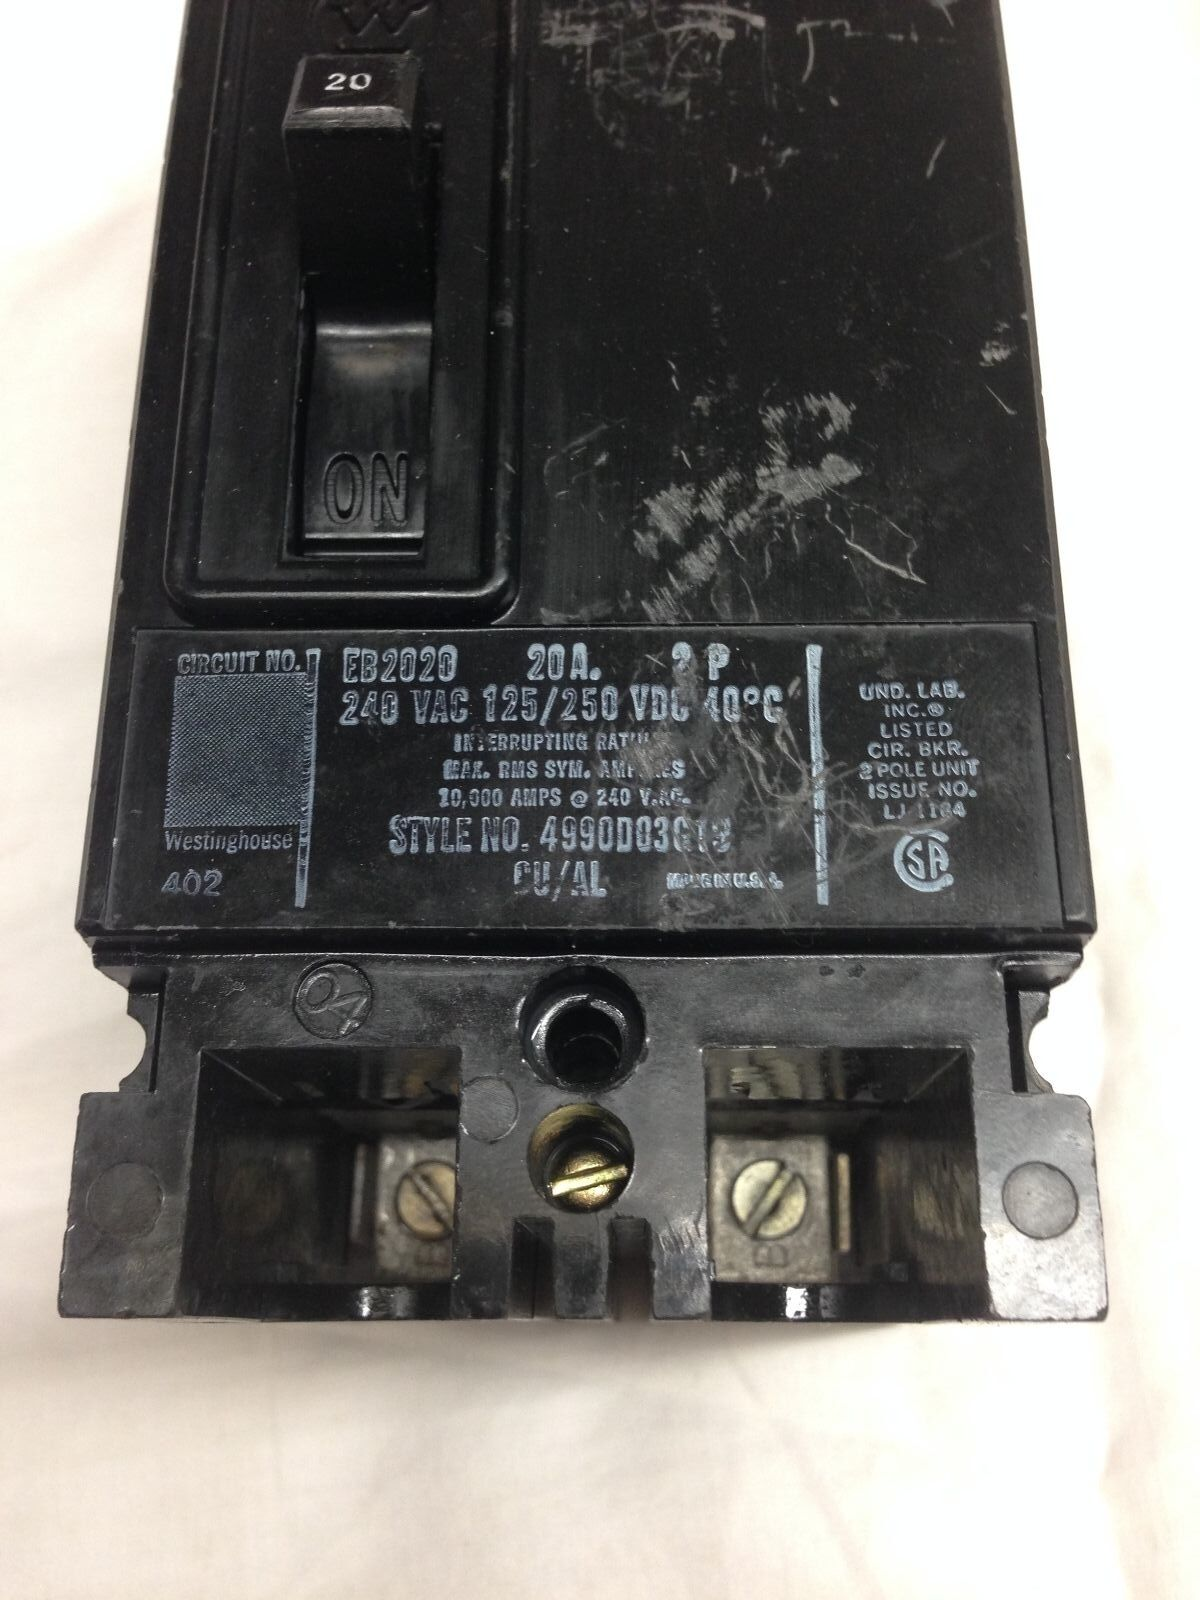 Westinghouse Eb2020 20 Amp 2 Pole 240v Circuit Breaker Ebay Gfci Receptacle With Led Screw Mount 125 Volt Ac 2pole 3